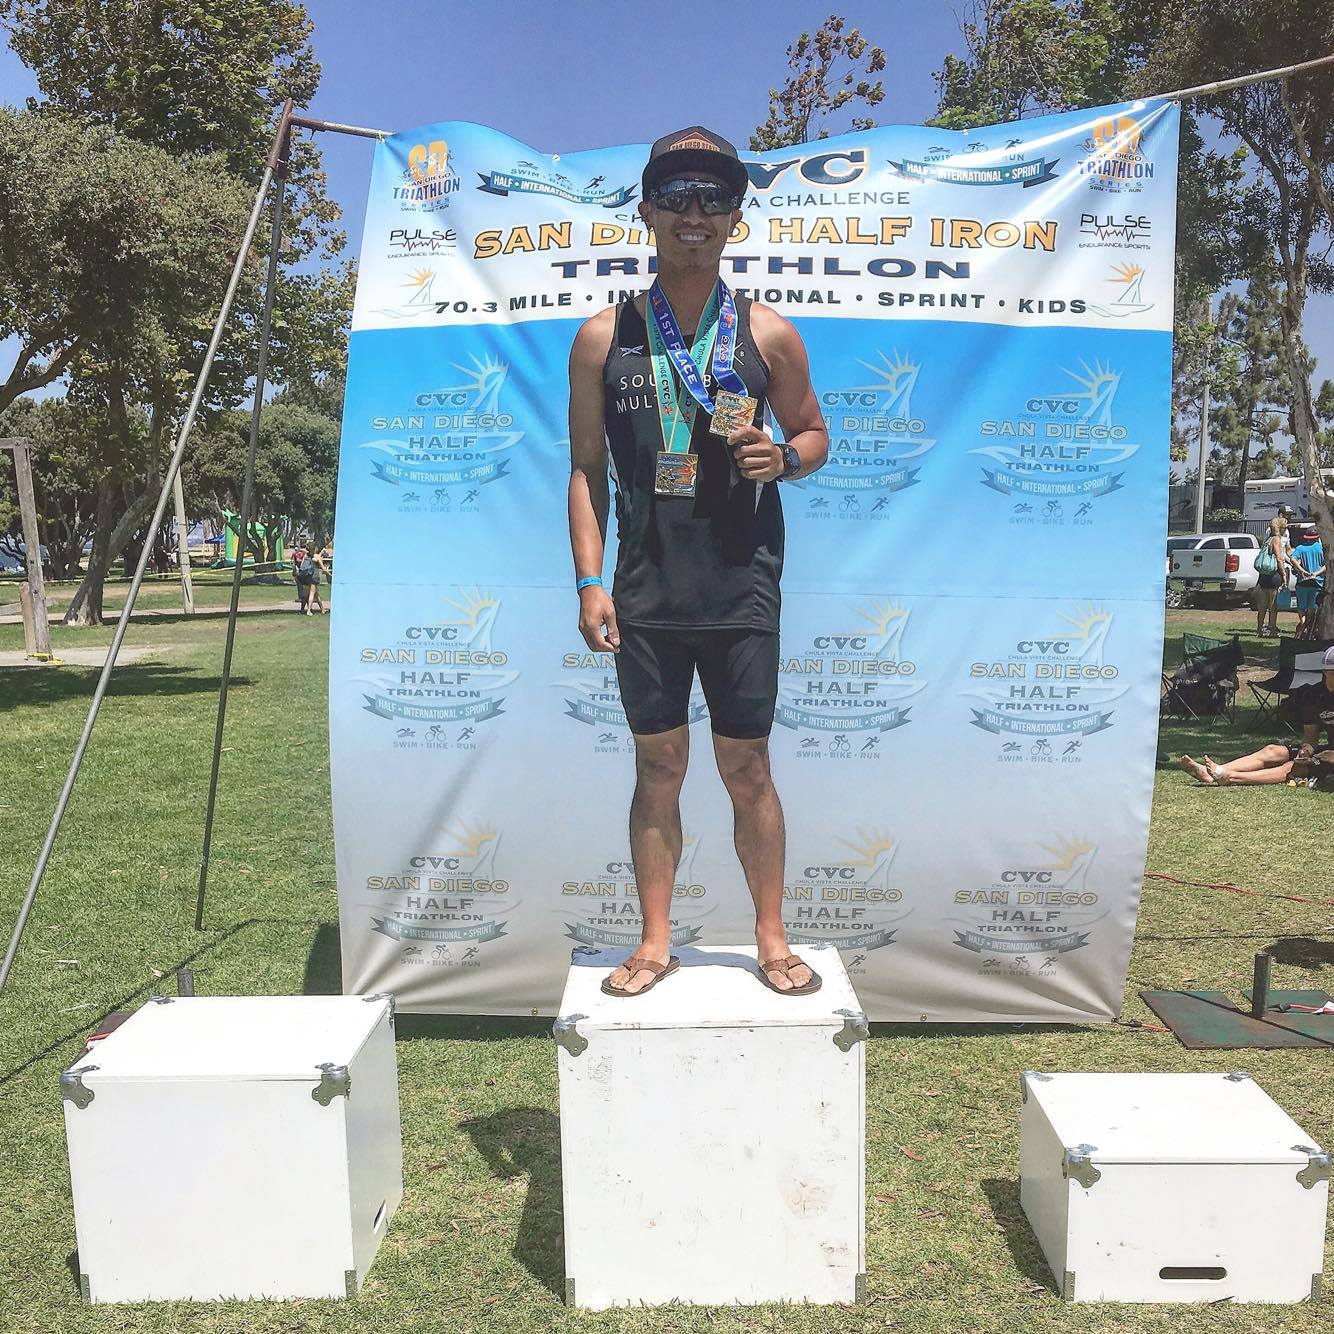 """SBMS Athlete Andrew Rioveros, pictured above after taking 1st place in the 20-24 Age Group at the Chula Vista Challenge Sprint Triathlon. Trained by Coach Zack.  """"South Bay Multi Sport has brought me up to new levels of accomplishments in the sport of triathlon. The coaches know exactly what it takes for each individual athlete to reach their full potential. Under the coaching of Zack hammer, I was able to PR and place top ten in my age group for the 2016 Mission Bay Triathlon for the first time since 2012. Furthermore, I placed 1st in my age group at the 2016 Chula Vista Challenge Sprint Triathlon which qualified me for the Age Group National Championships. My favorite part about being in this family of athletes is the encouragement and motivation you get on and off season. Coach Zack and Coach Josh work hard to see their athletes take on PR's and podiums."""""""